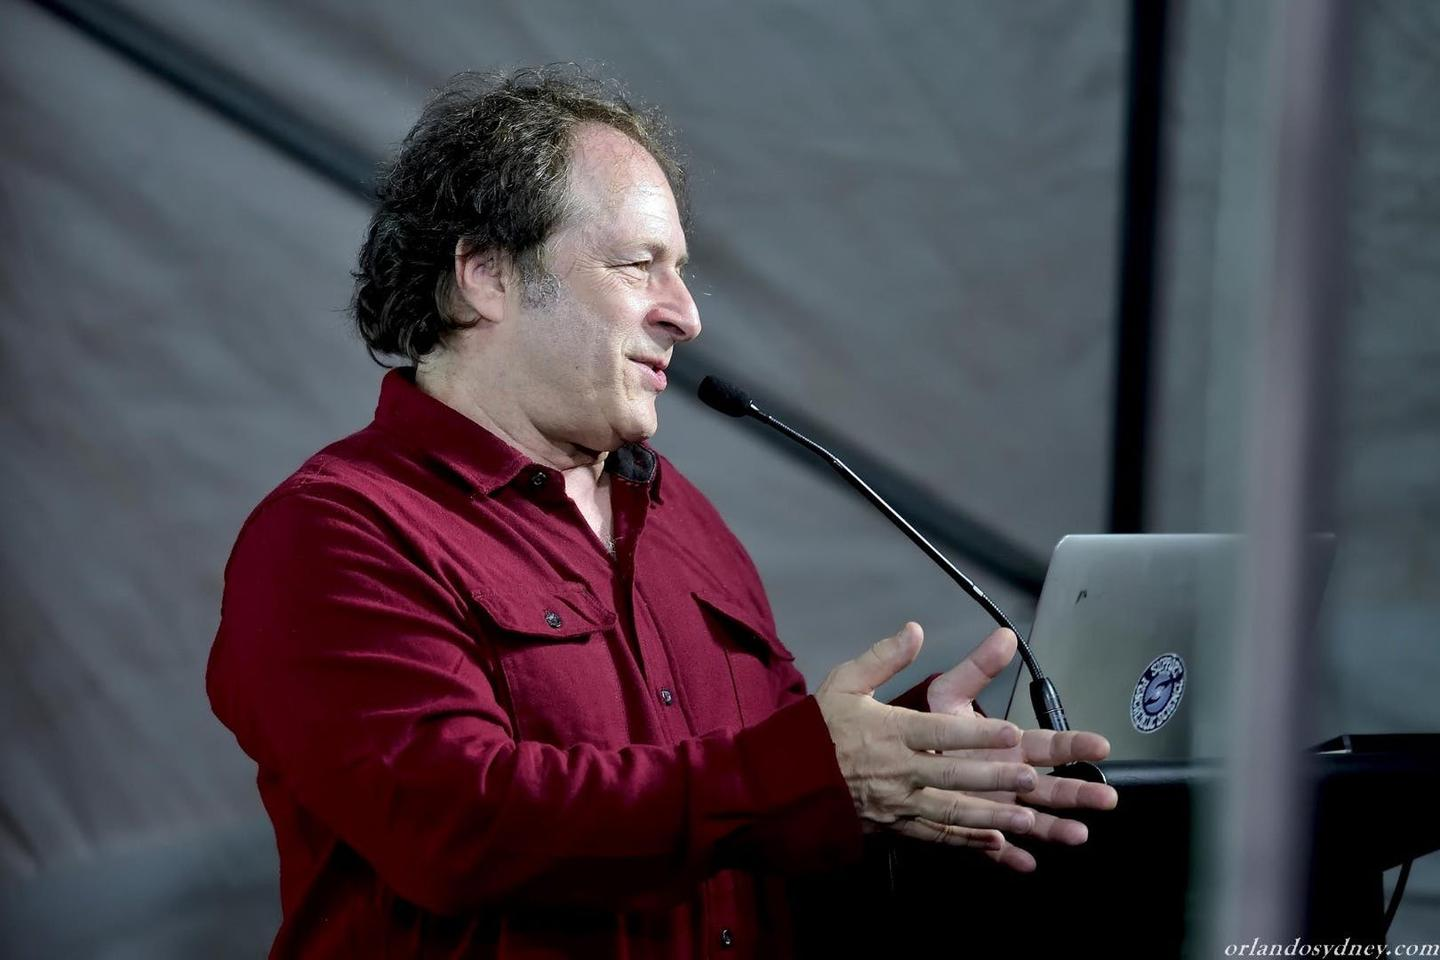 Rick Doblin presenting his pioneering research at the Entheogenesis Australis Psychedelic Symposium in late 2017